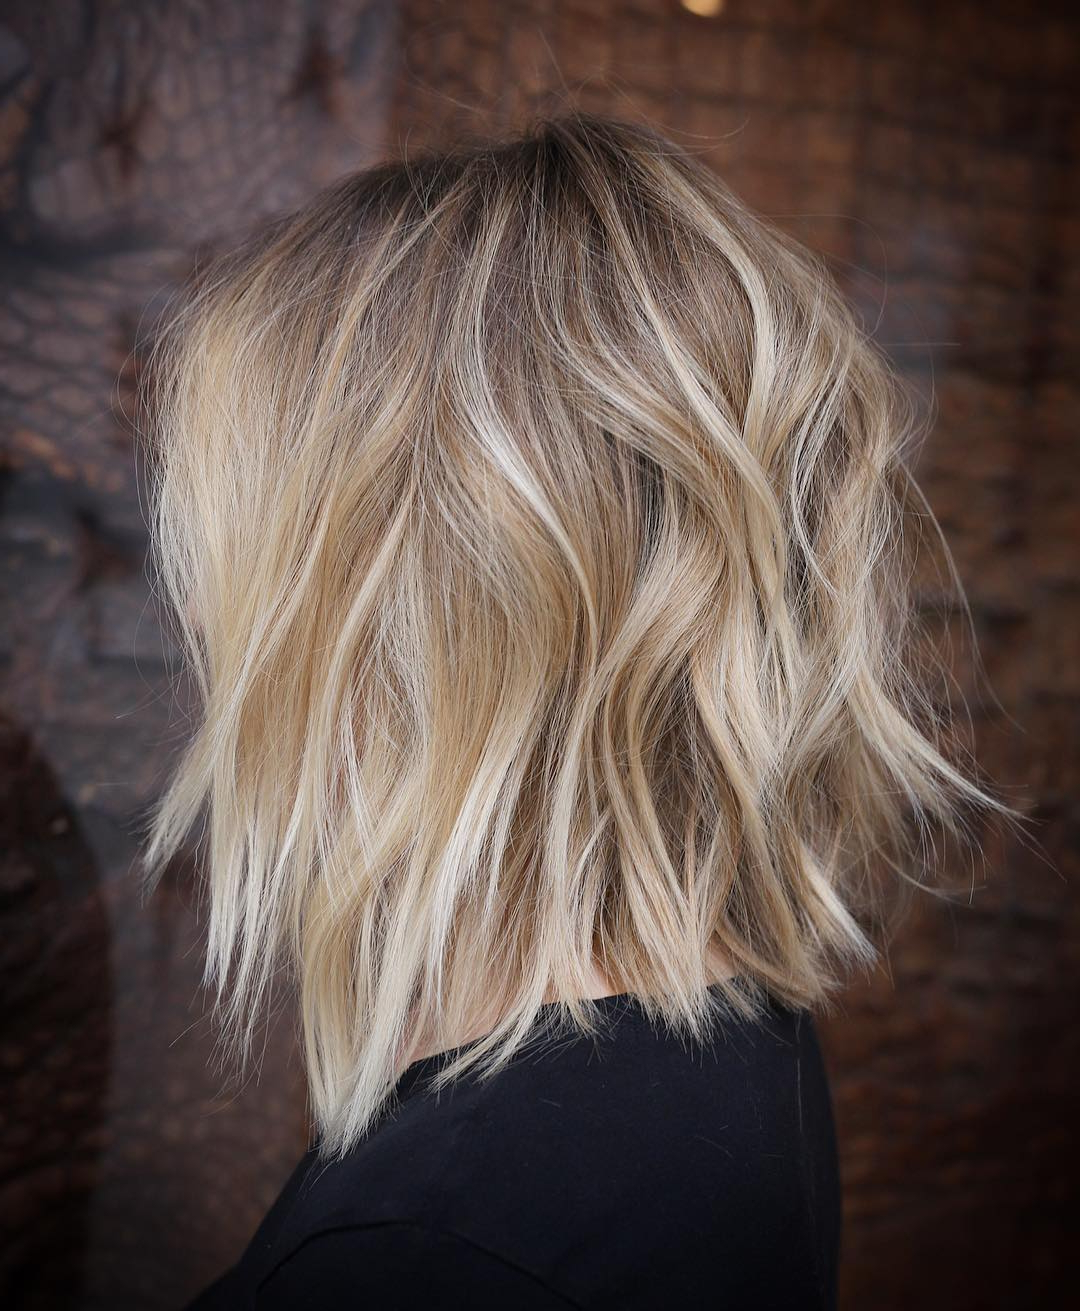 Favorite Long Feathered Strawberry Blonde Haircuts Regarding 10 Stylish Lob Hairstyle Ideas, Best Shoulder Length Hair For Women 2019 (Gallery 9 of 20)